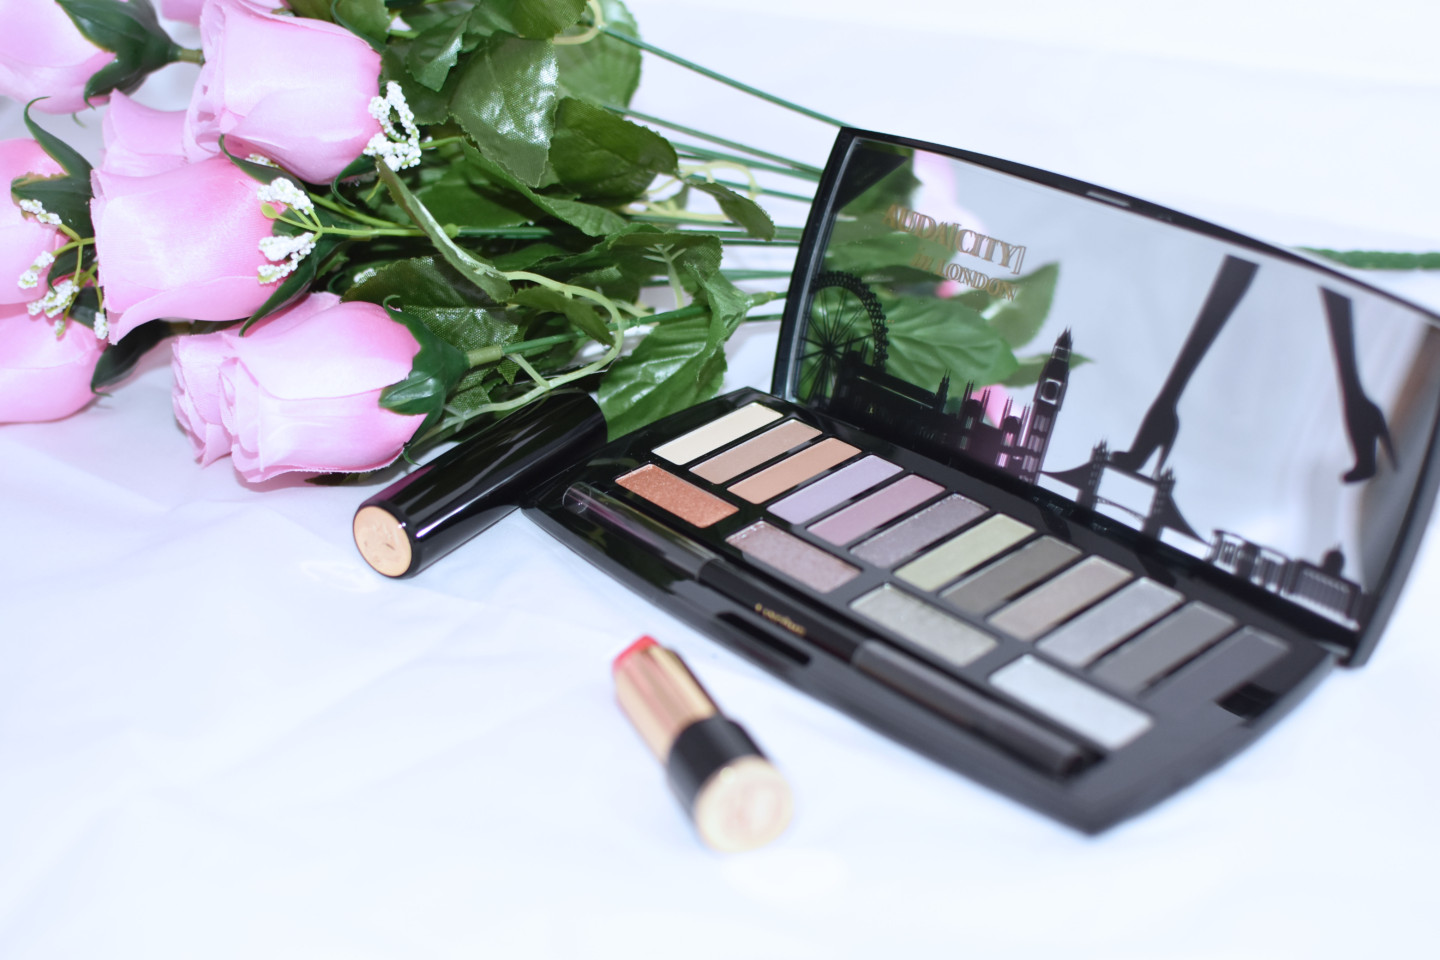 lancome-AUDACITY-palette-london-limited-edition-valentina-coco-zagufashion-fashion-blogger-2016